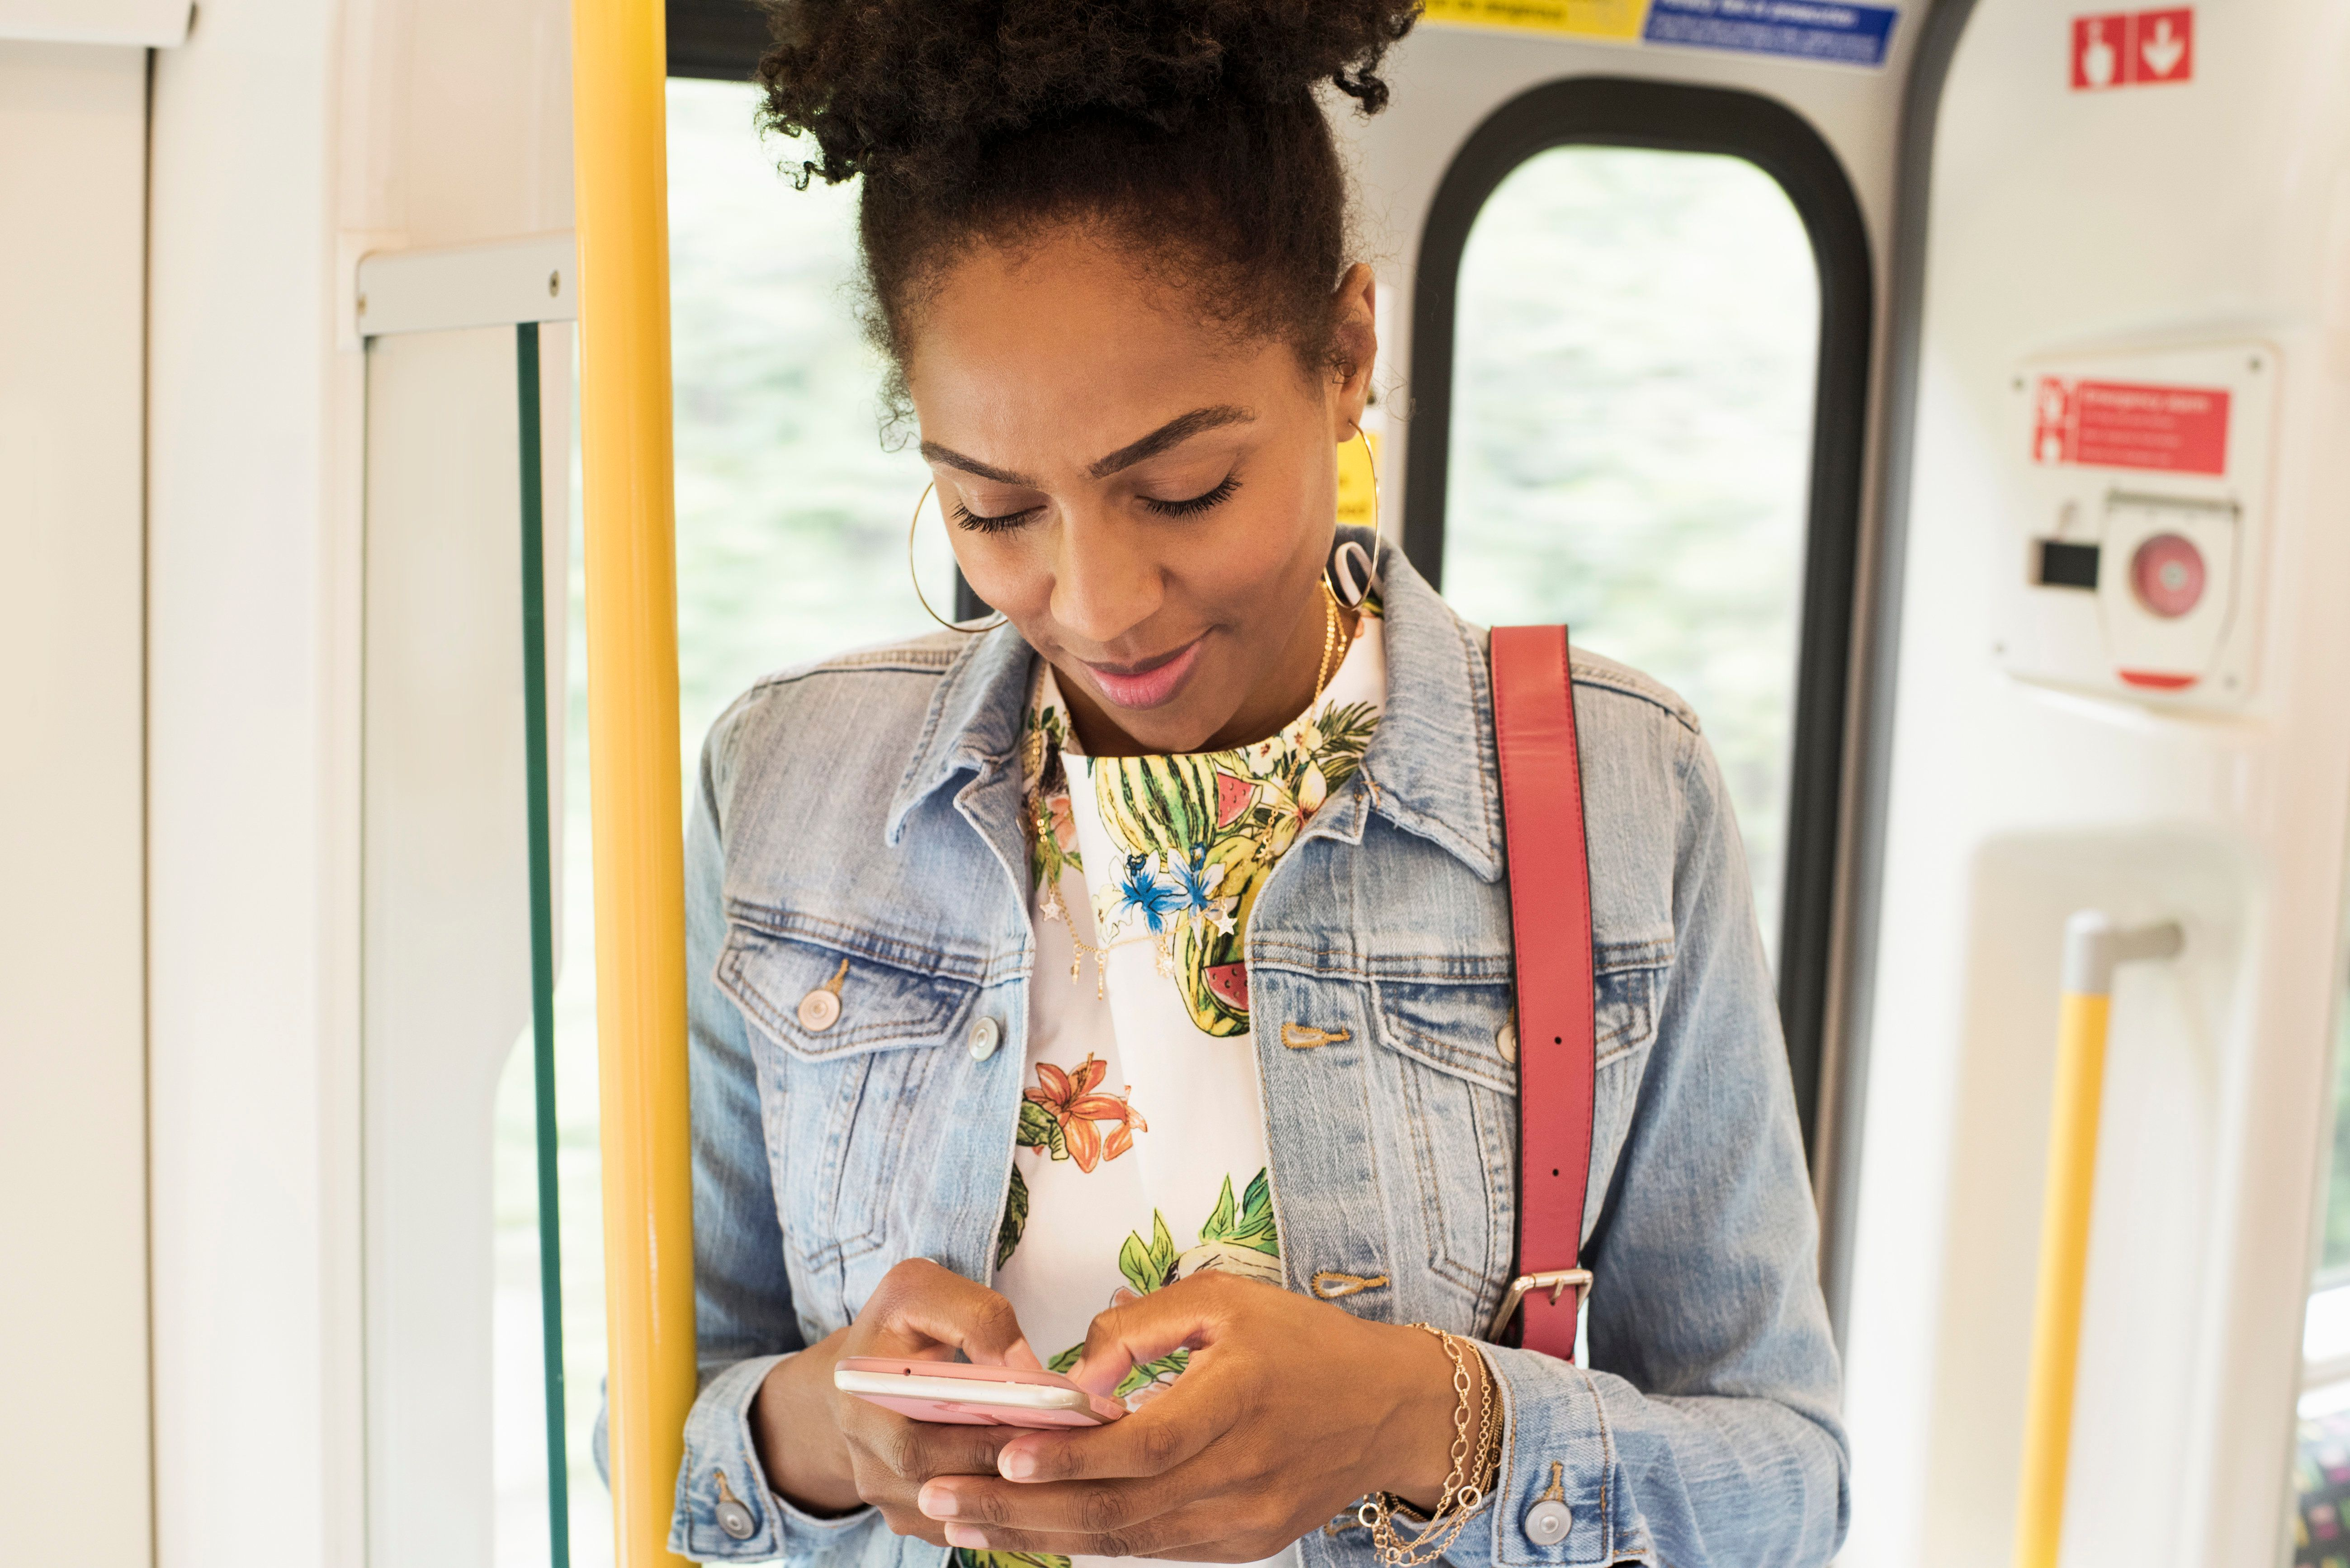 We Spent A Week Phoning Our Friends Without Texting Them First - Here's How It